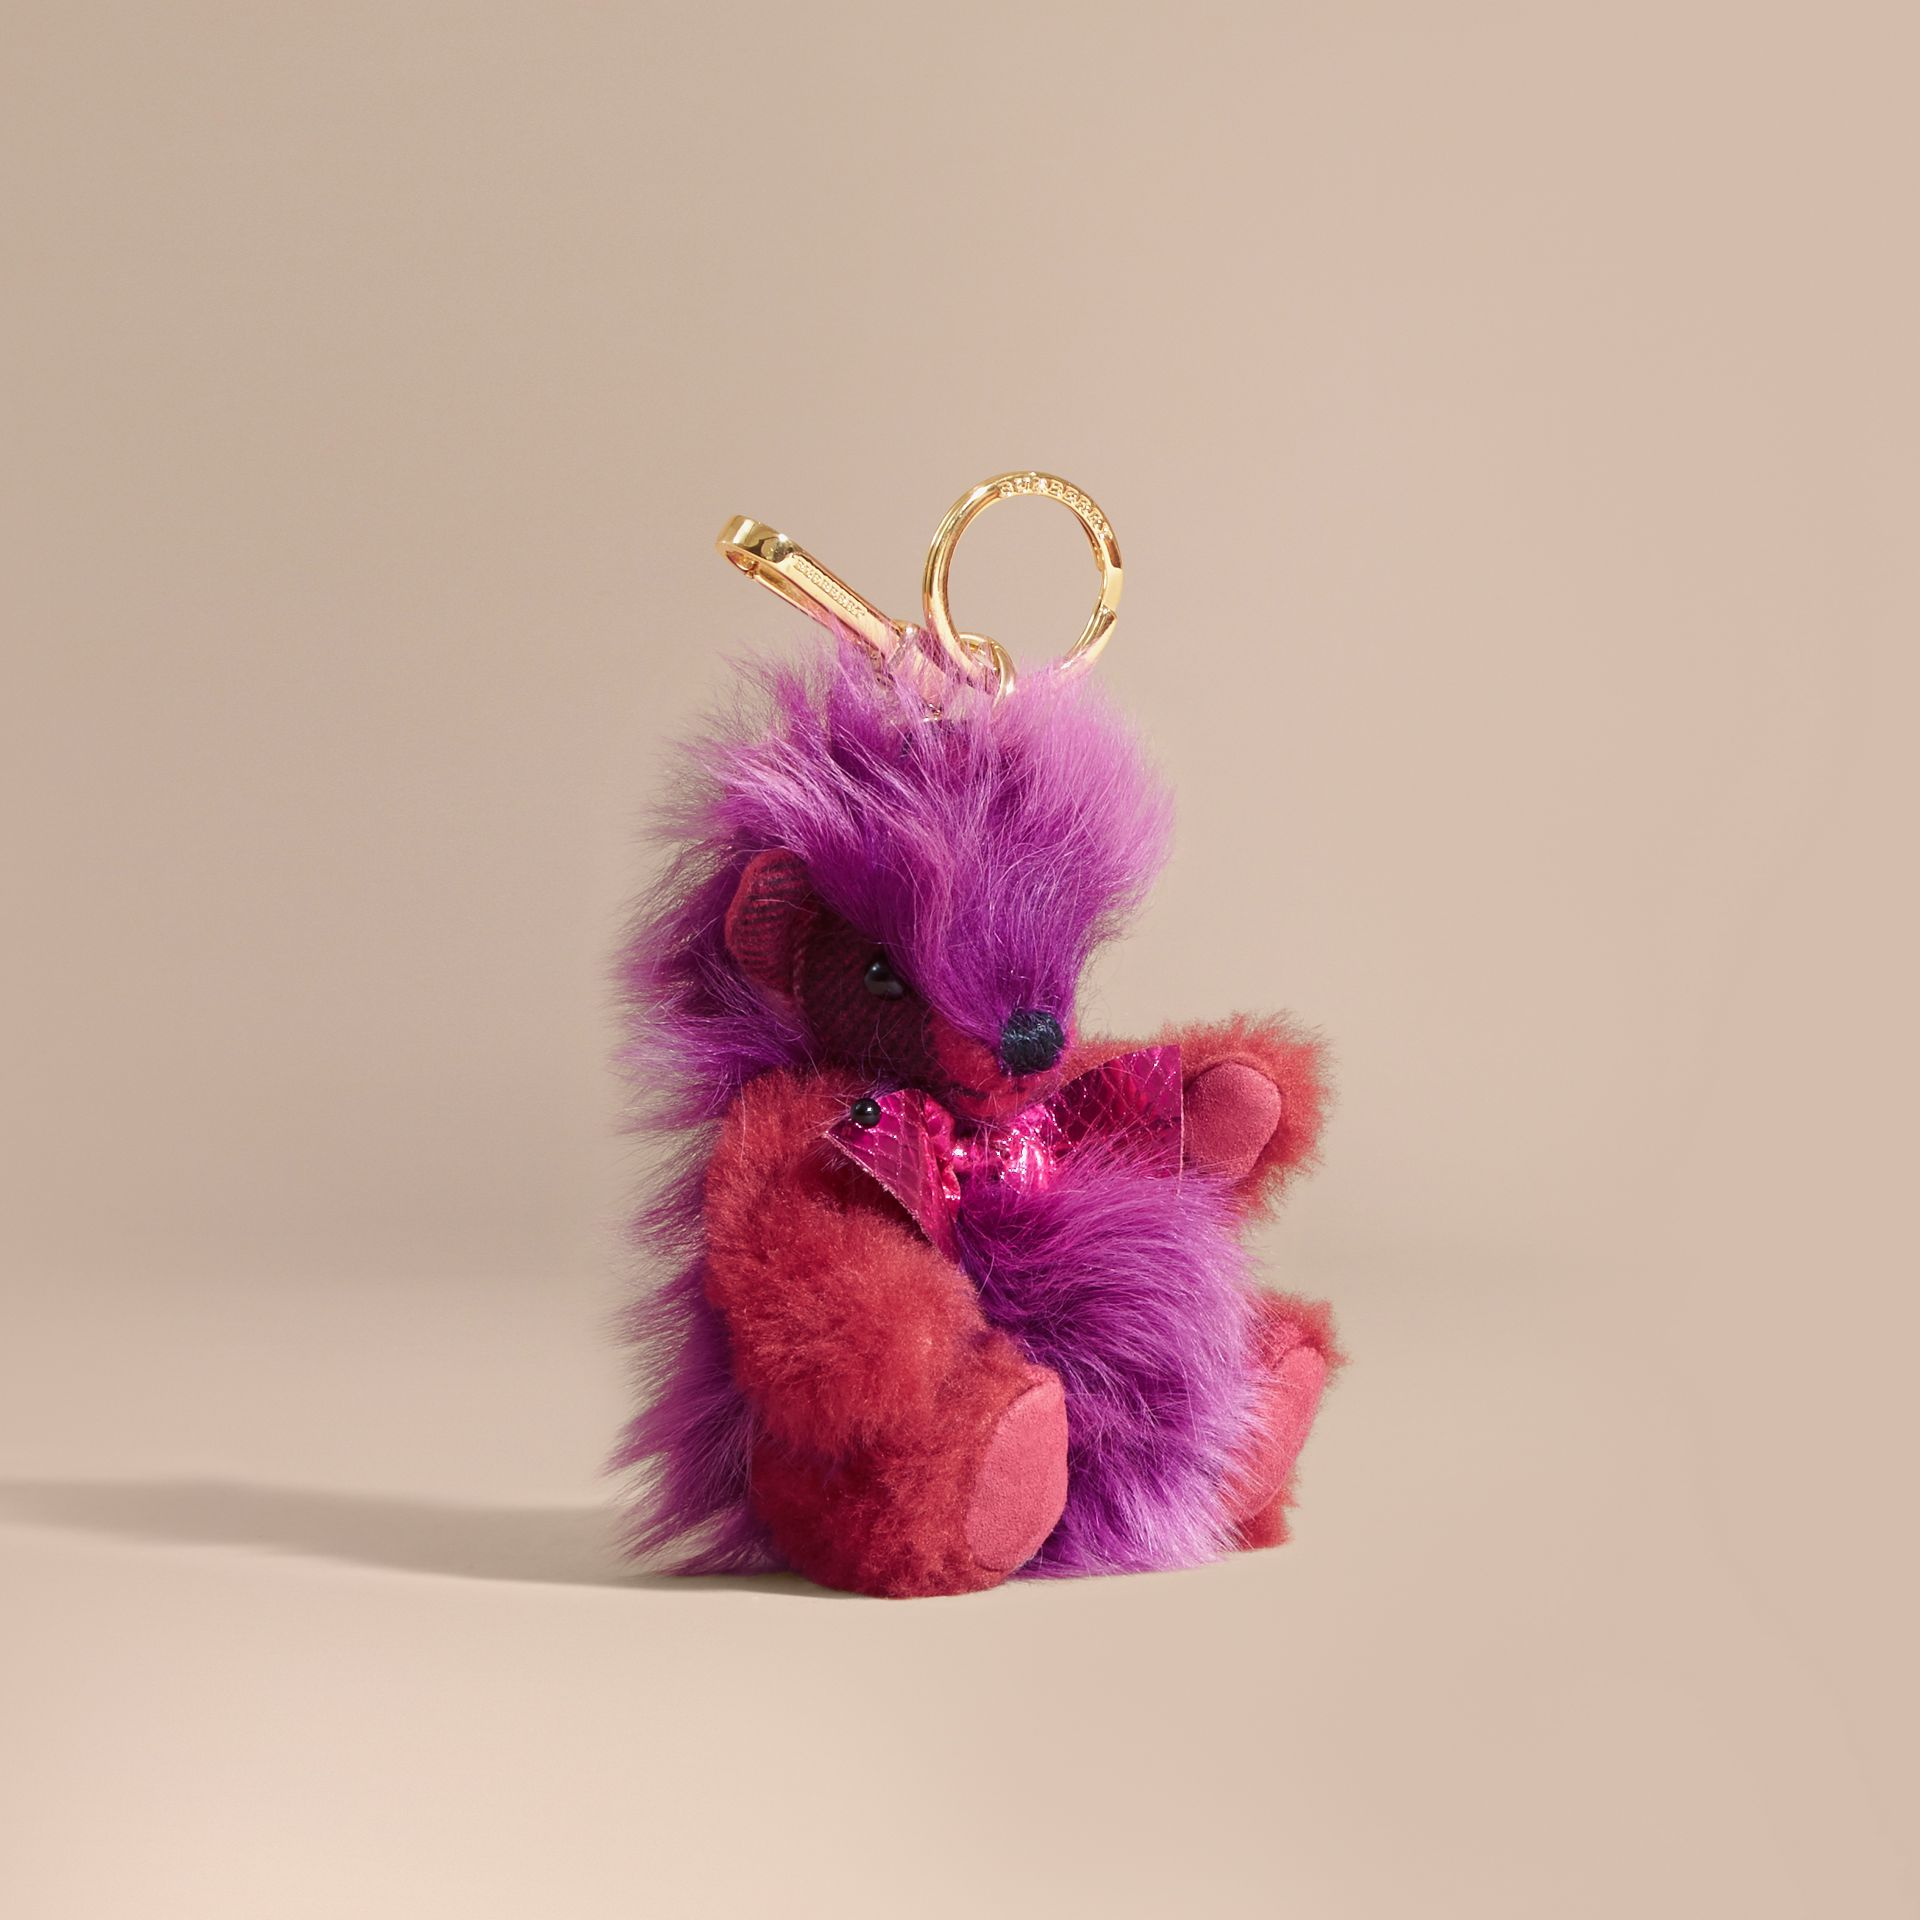 Thomas Bear Pom-Pom Charm in Check Cashmere in Fuchsia Pink - Women | Burberry Australia - gallery image 1